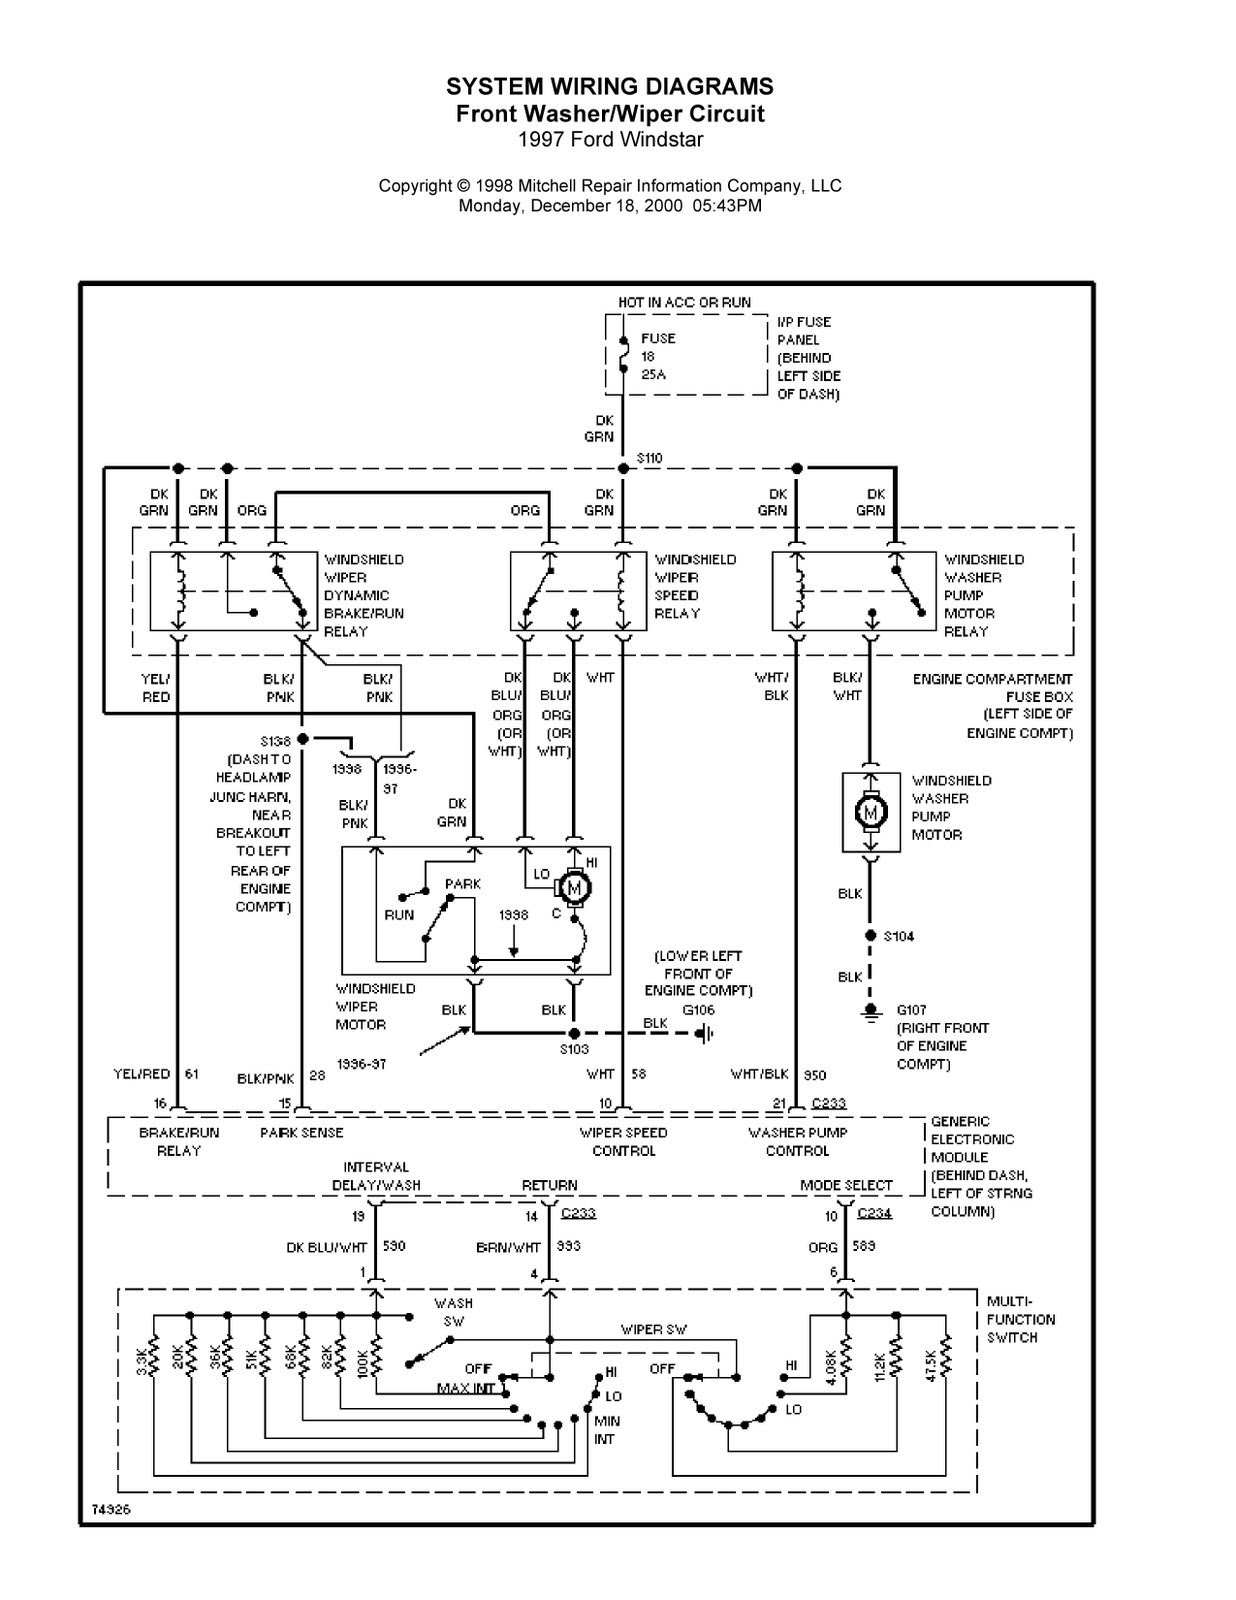 2001 Ford Windstar Wiring Diagram from lh6.googleusercontent.com